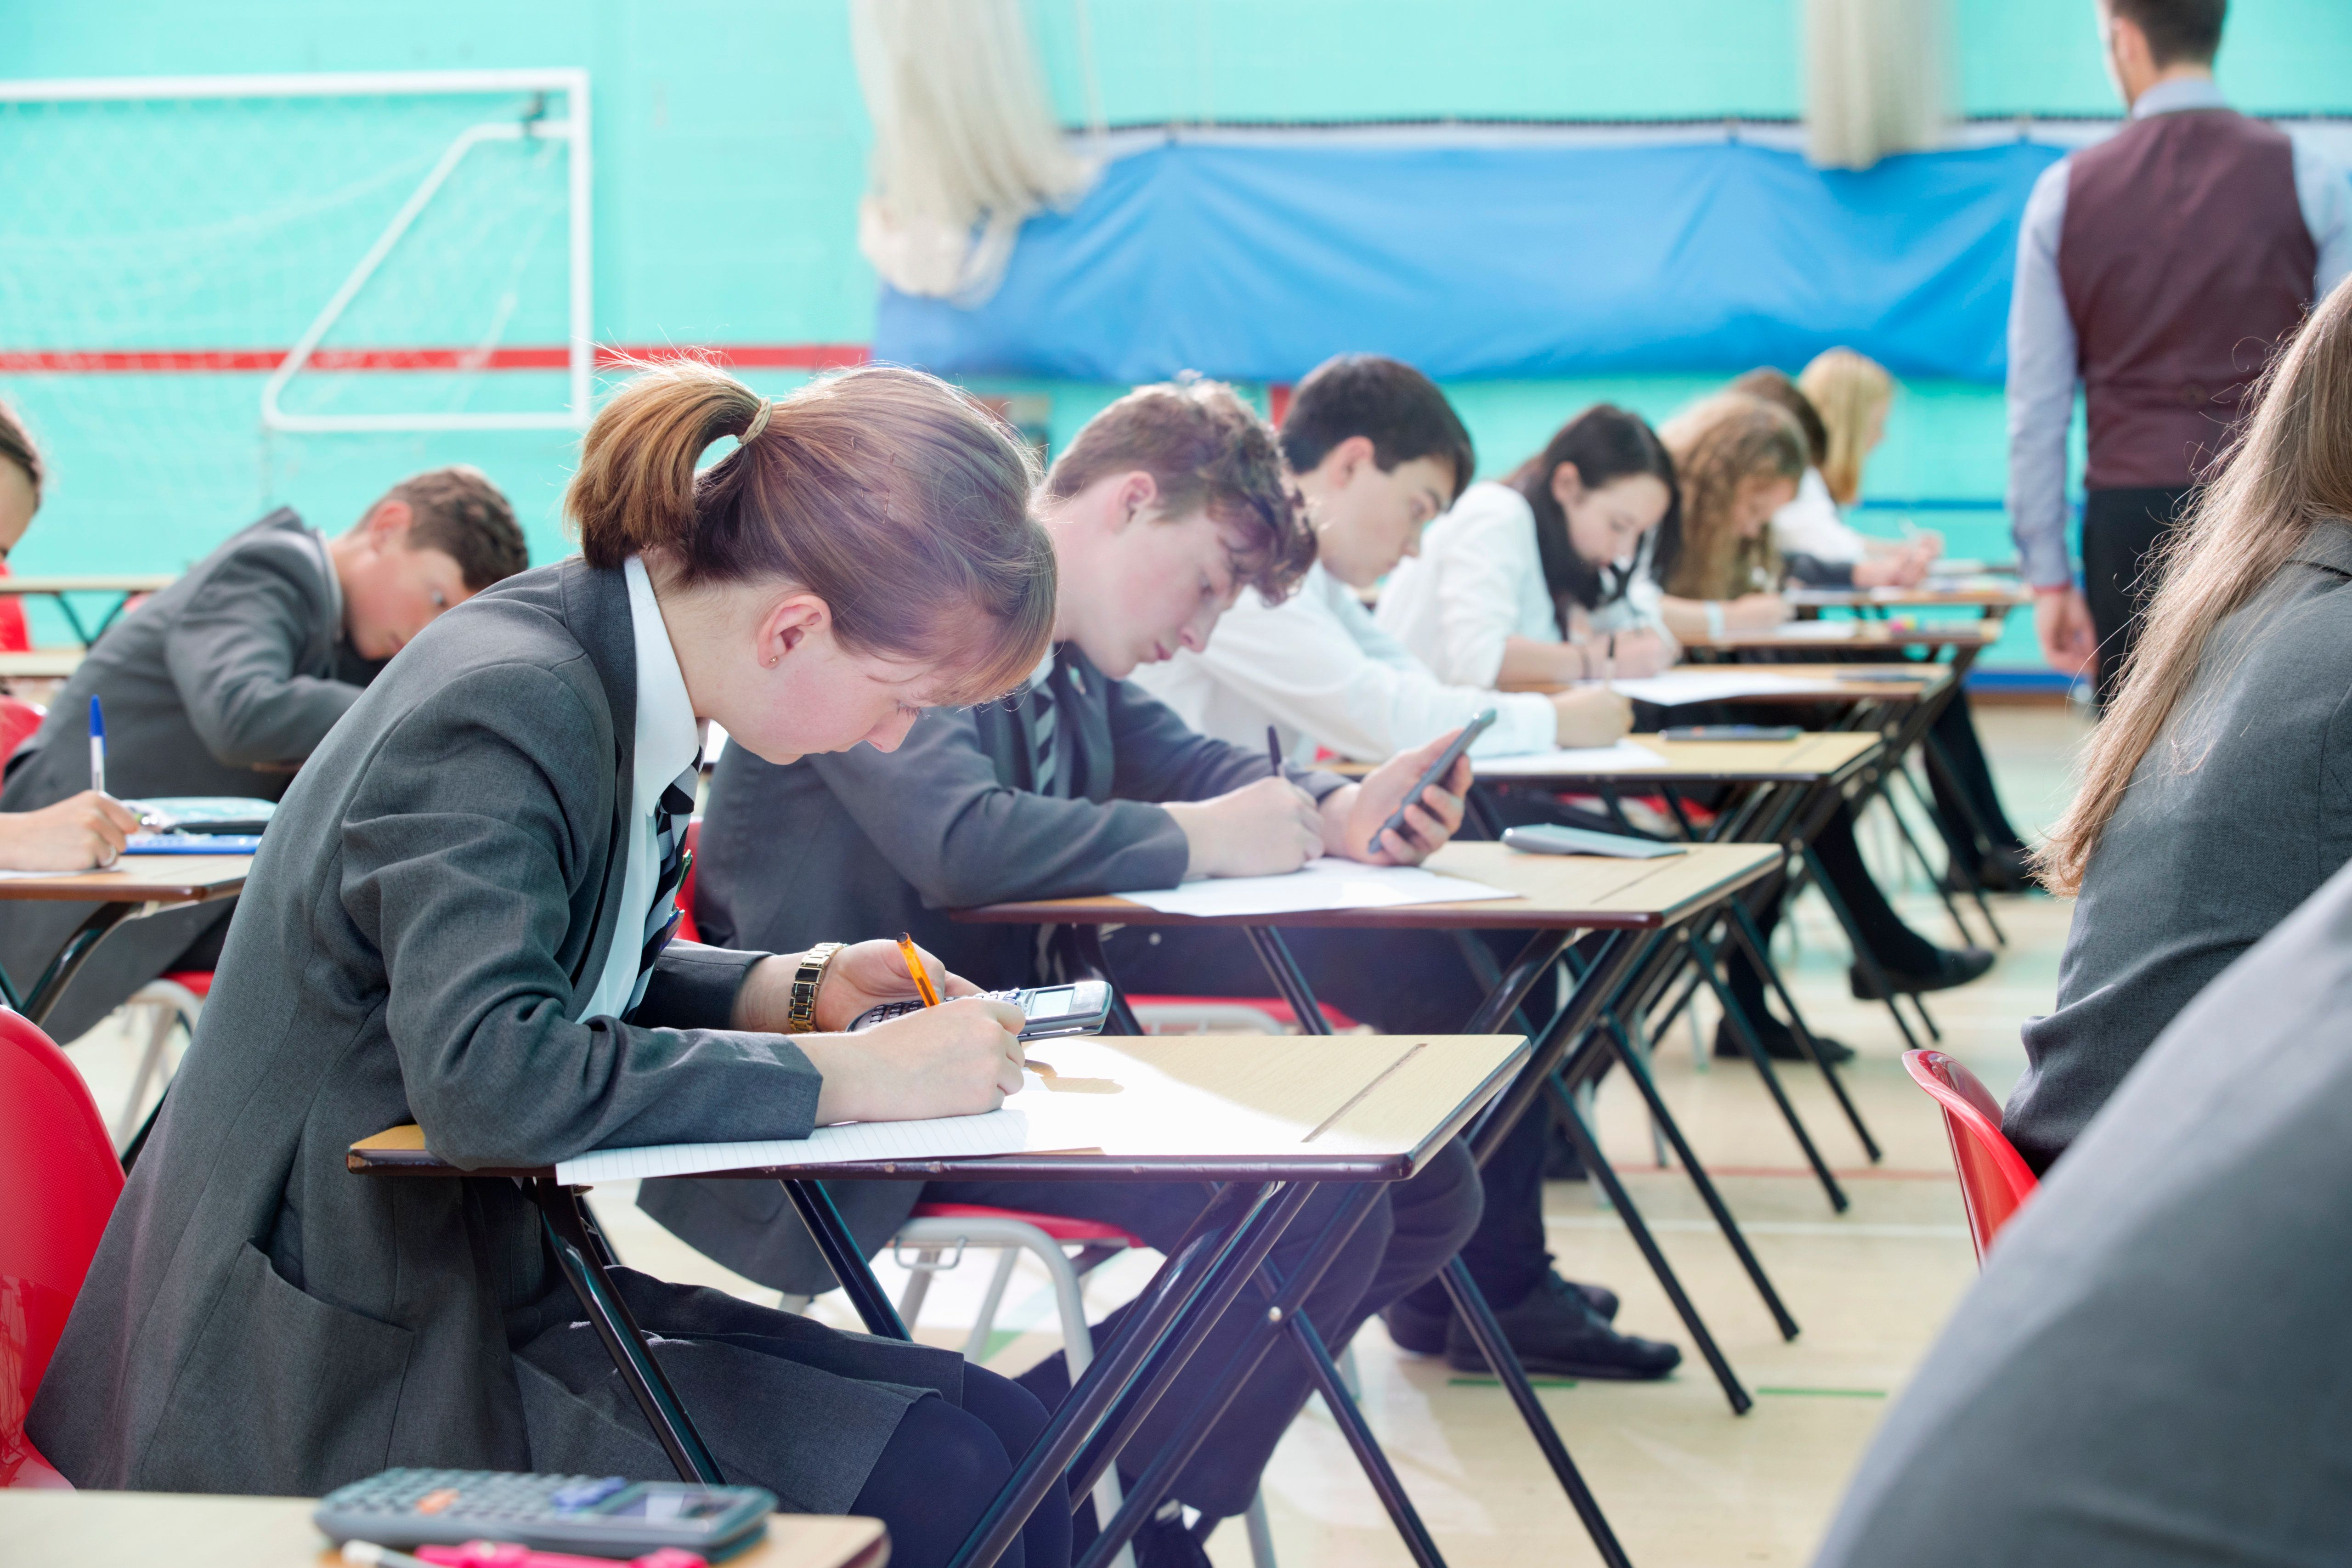 Shortage Of Secondary School Places Being Attributed To 2000s Baby